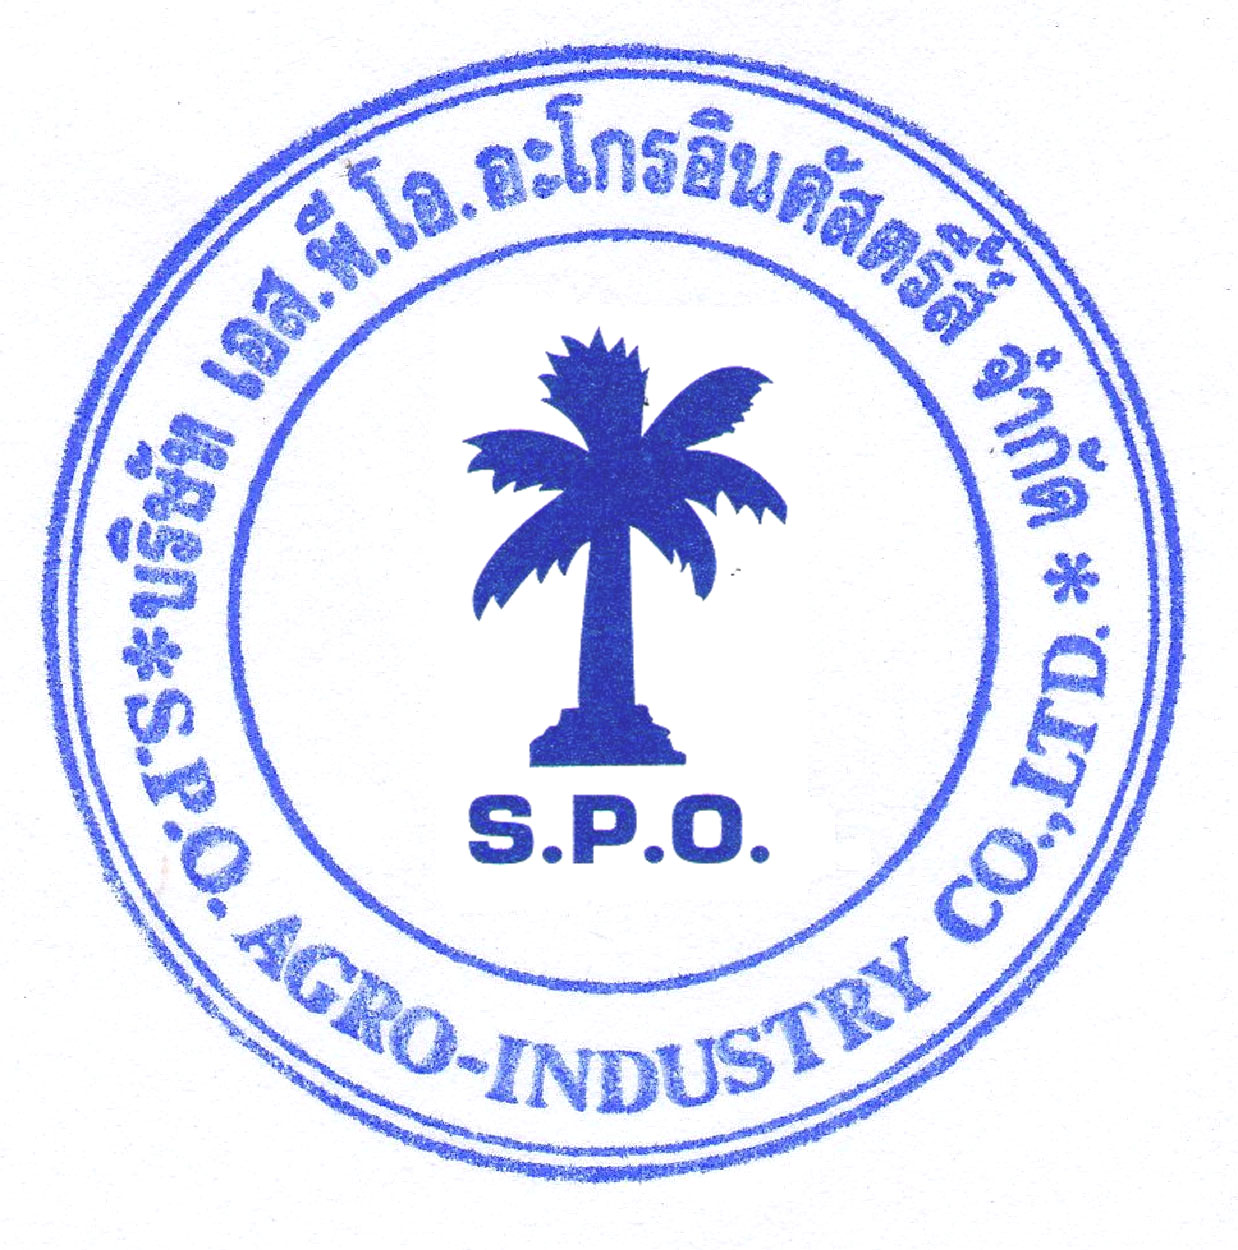 S.P.O. AGRO-INDUSTRIES CO.,LTD.